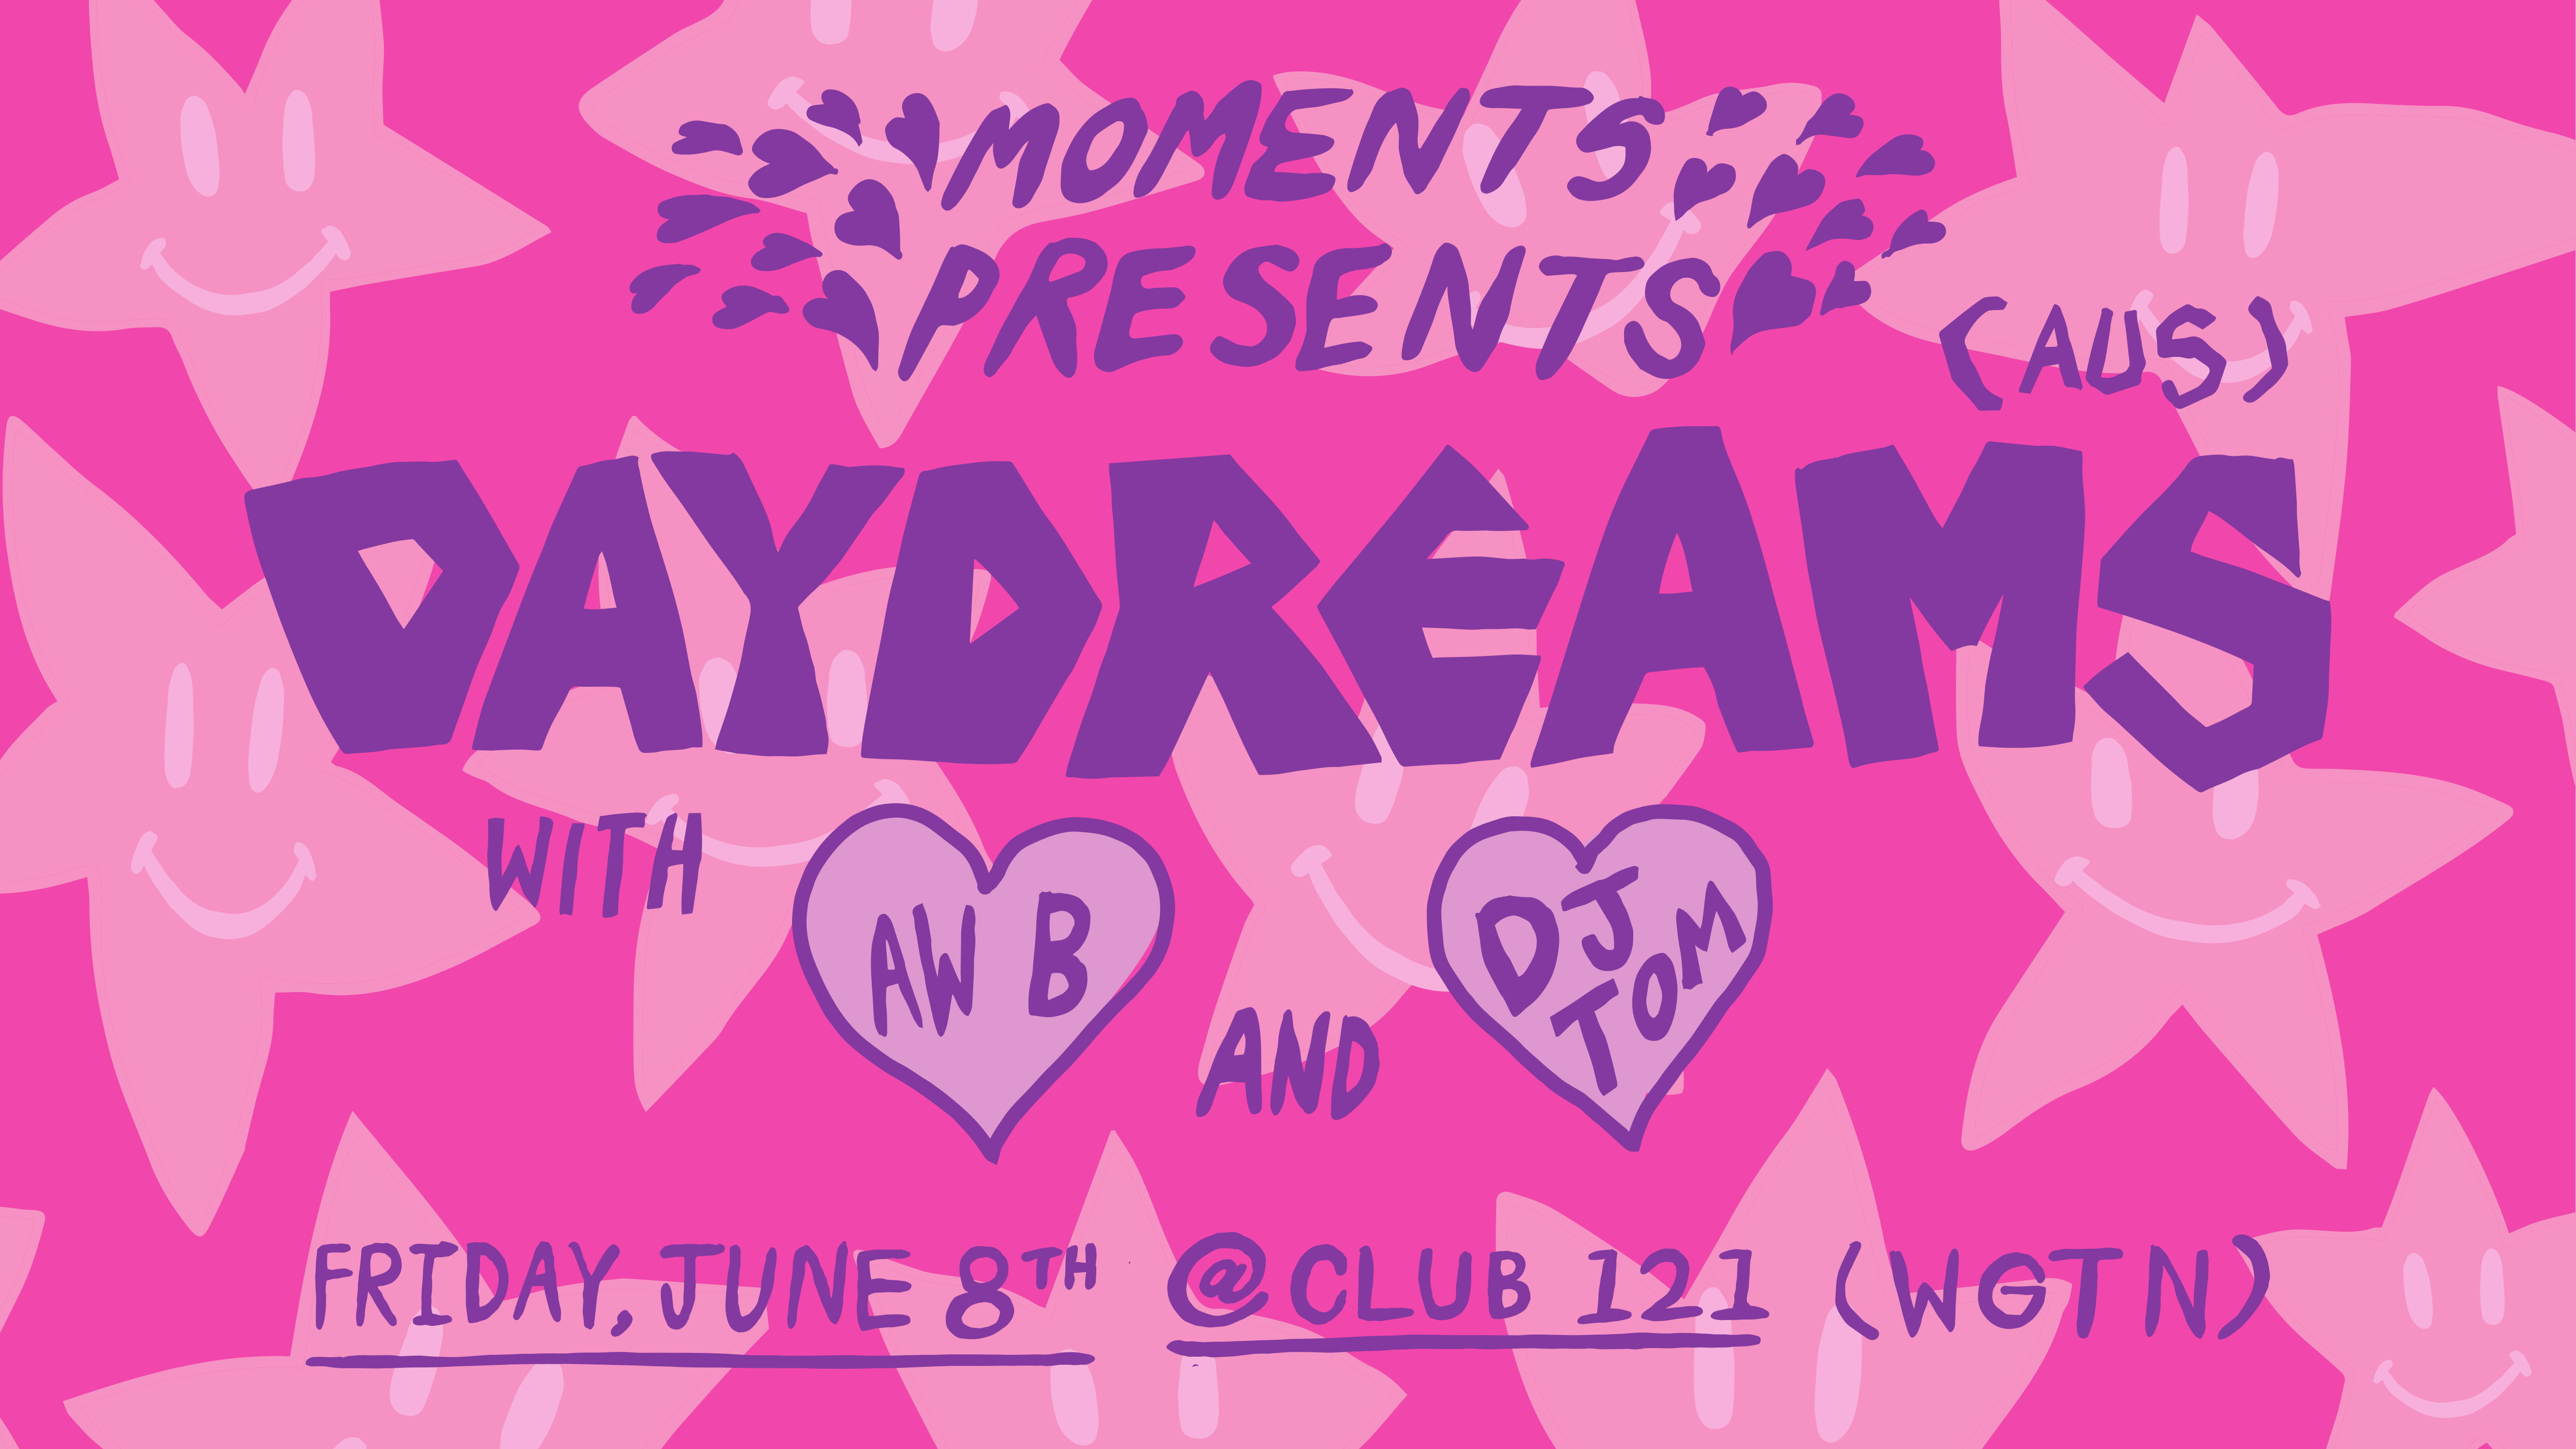 Daydreams with Aw B and Dj Tom